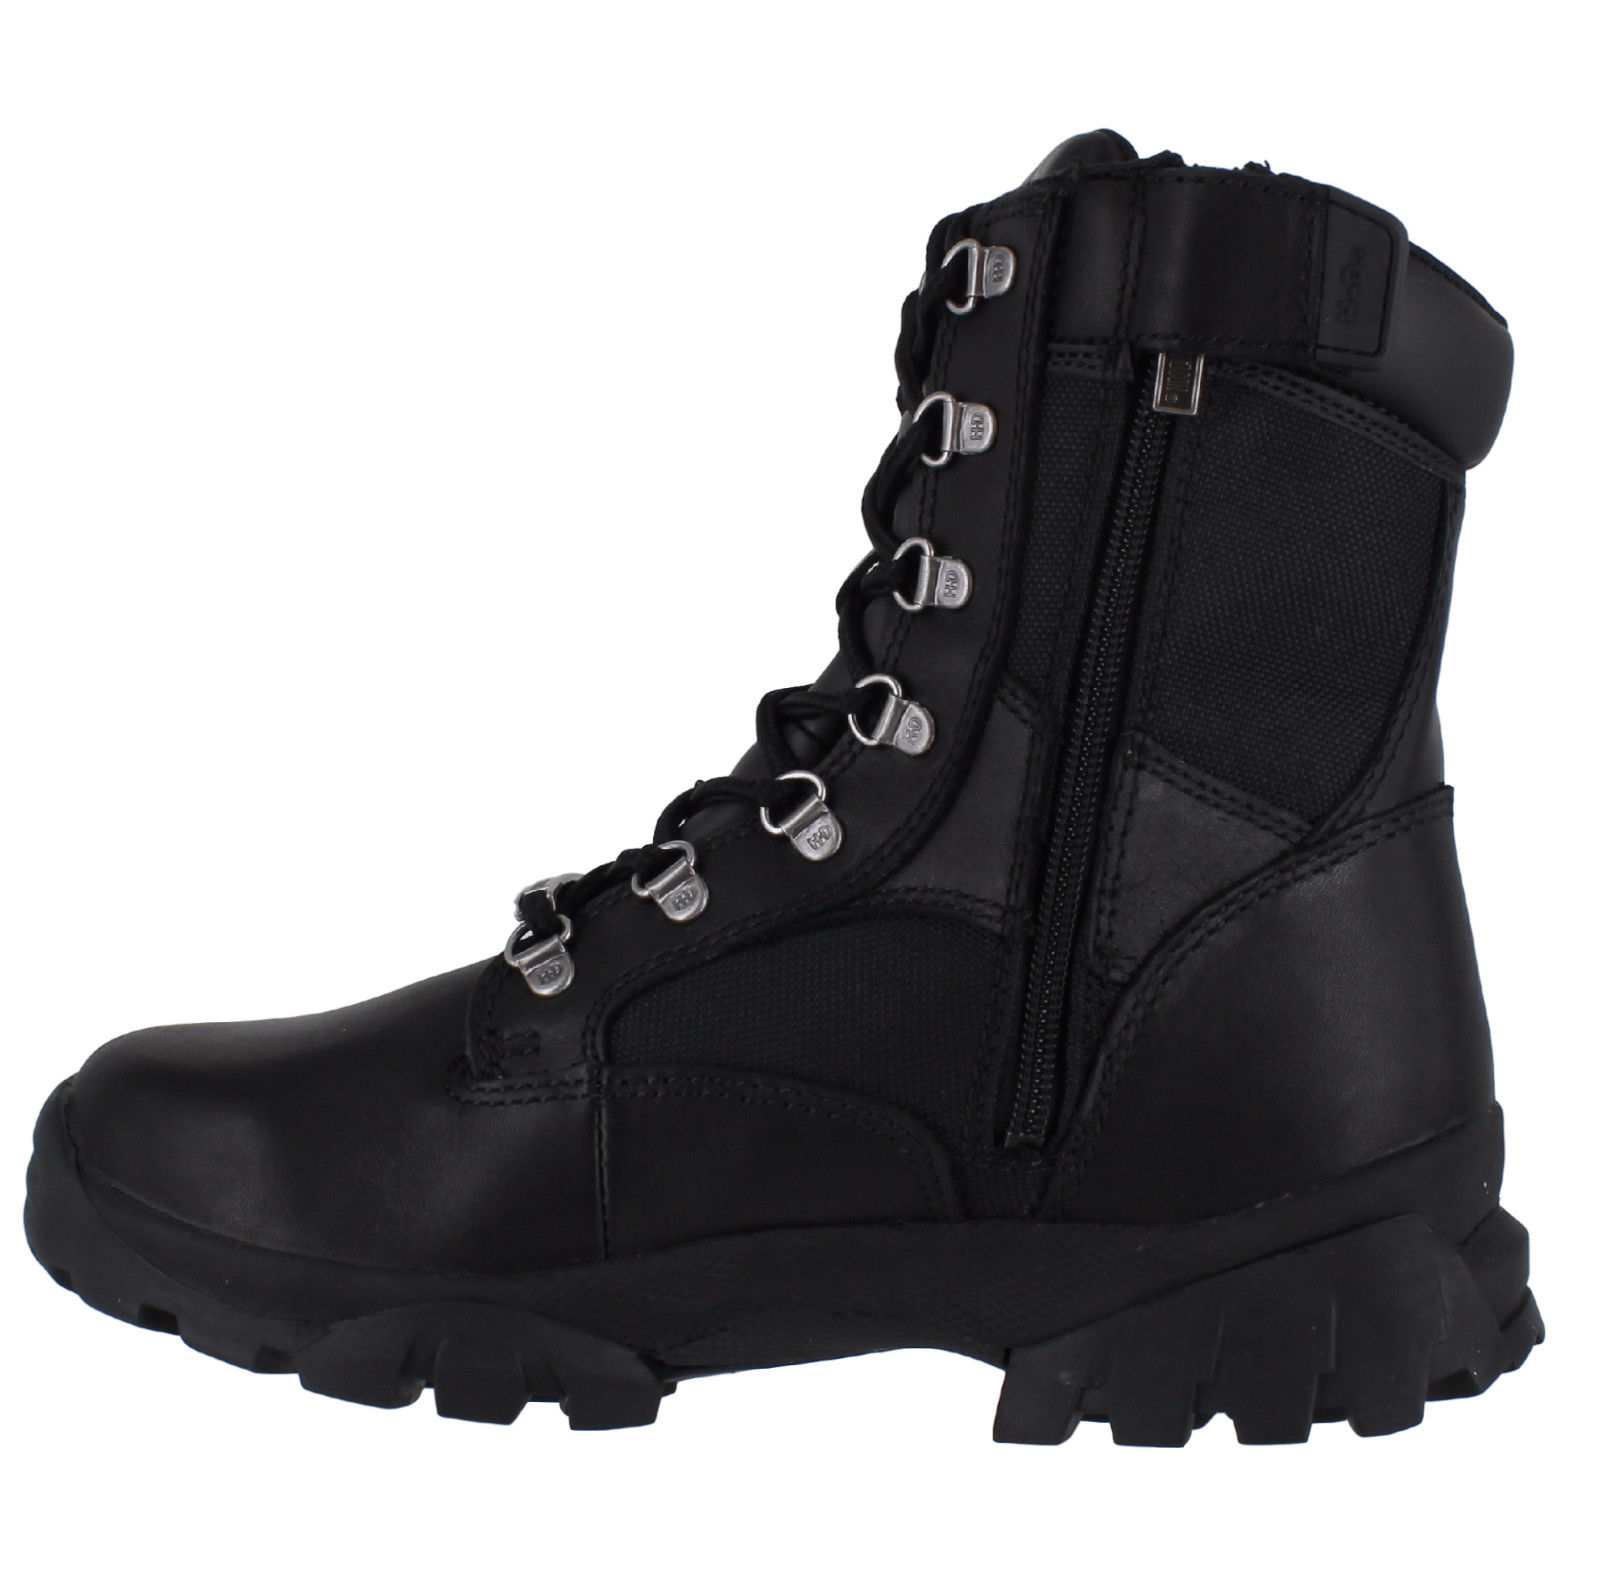 Innovative LADIES HARLEY DAVIDSONS MOTORCYCLE BOOTS SIZE 6 EXCELLENT CONDITION PAYED  Also Screaming Eagle Chaps For $5000 Ask For Derek Womens Harley Davidson Boots Sz 9 For Sale Womens Harley